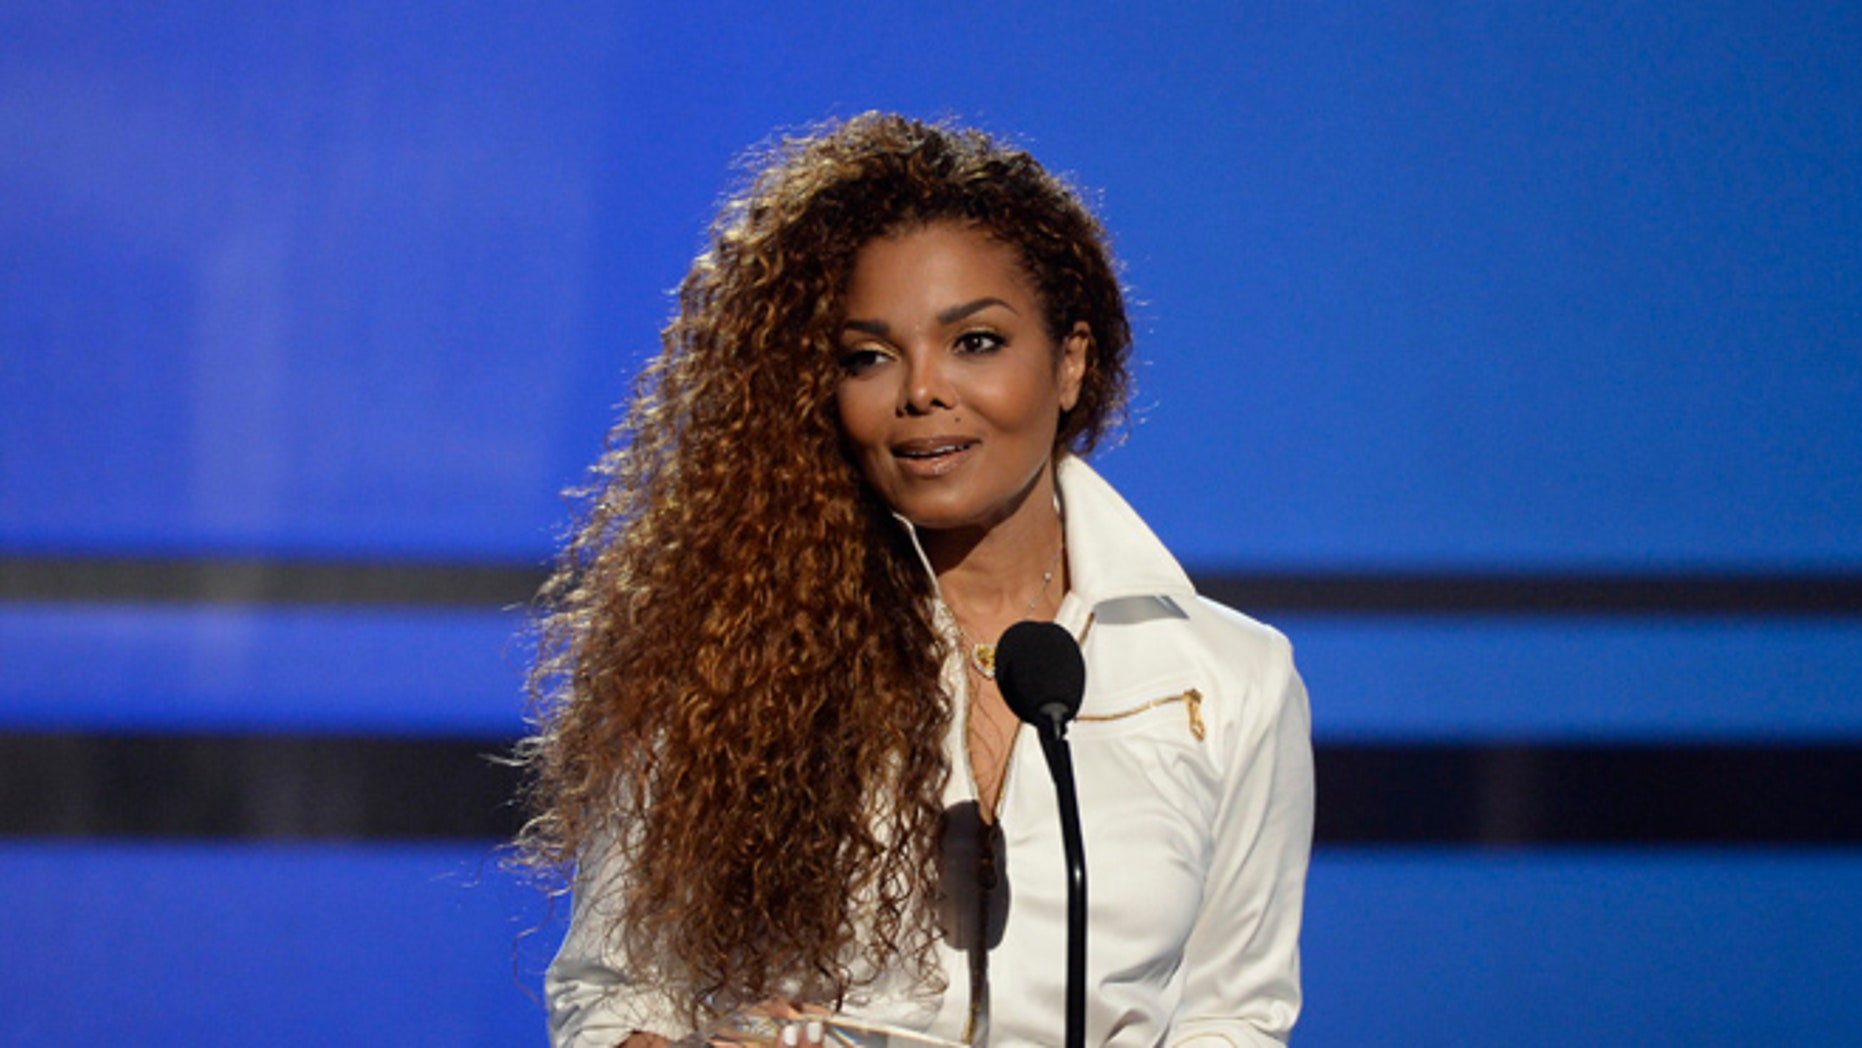 Janet Jackson accepts the Ultimate Icon Award during the 2015 BET Awards in Los Angeles, California, June 28, 2015.  REUTERS/Kevork Djansezian - RTX1I6RL